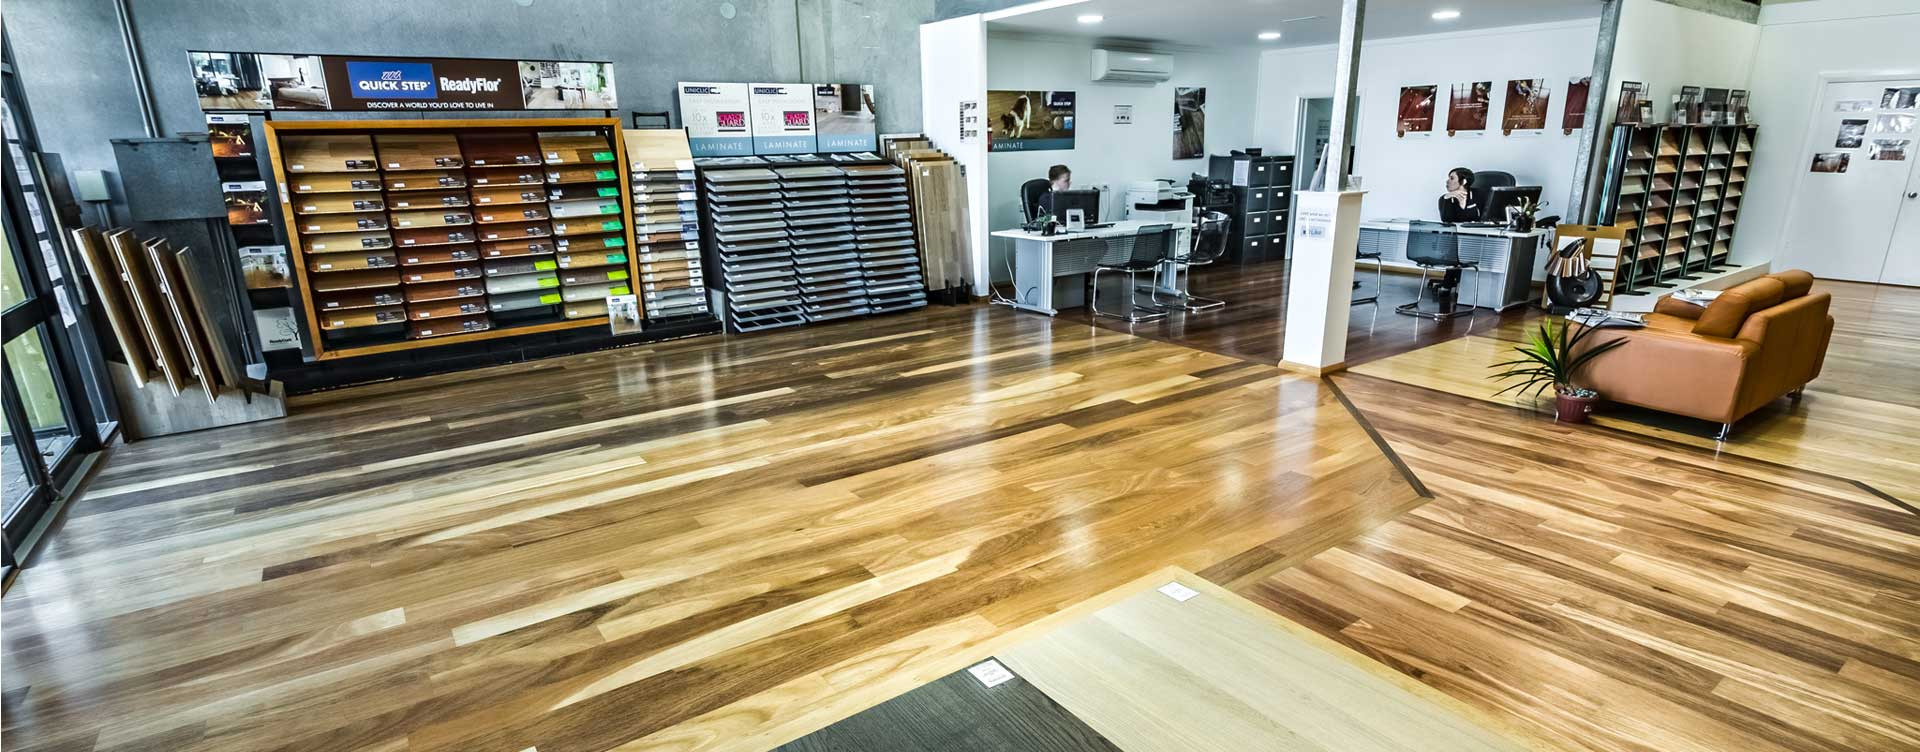 hardwood flooring brisbane prices of timber flooring perth coastal flooring wa quality wooden throughout thats why they call us the home of fine wood floors